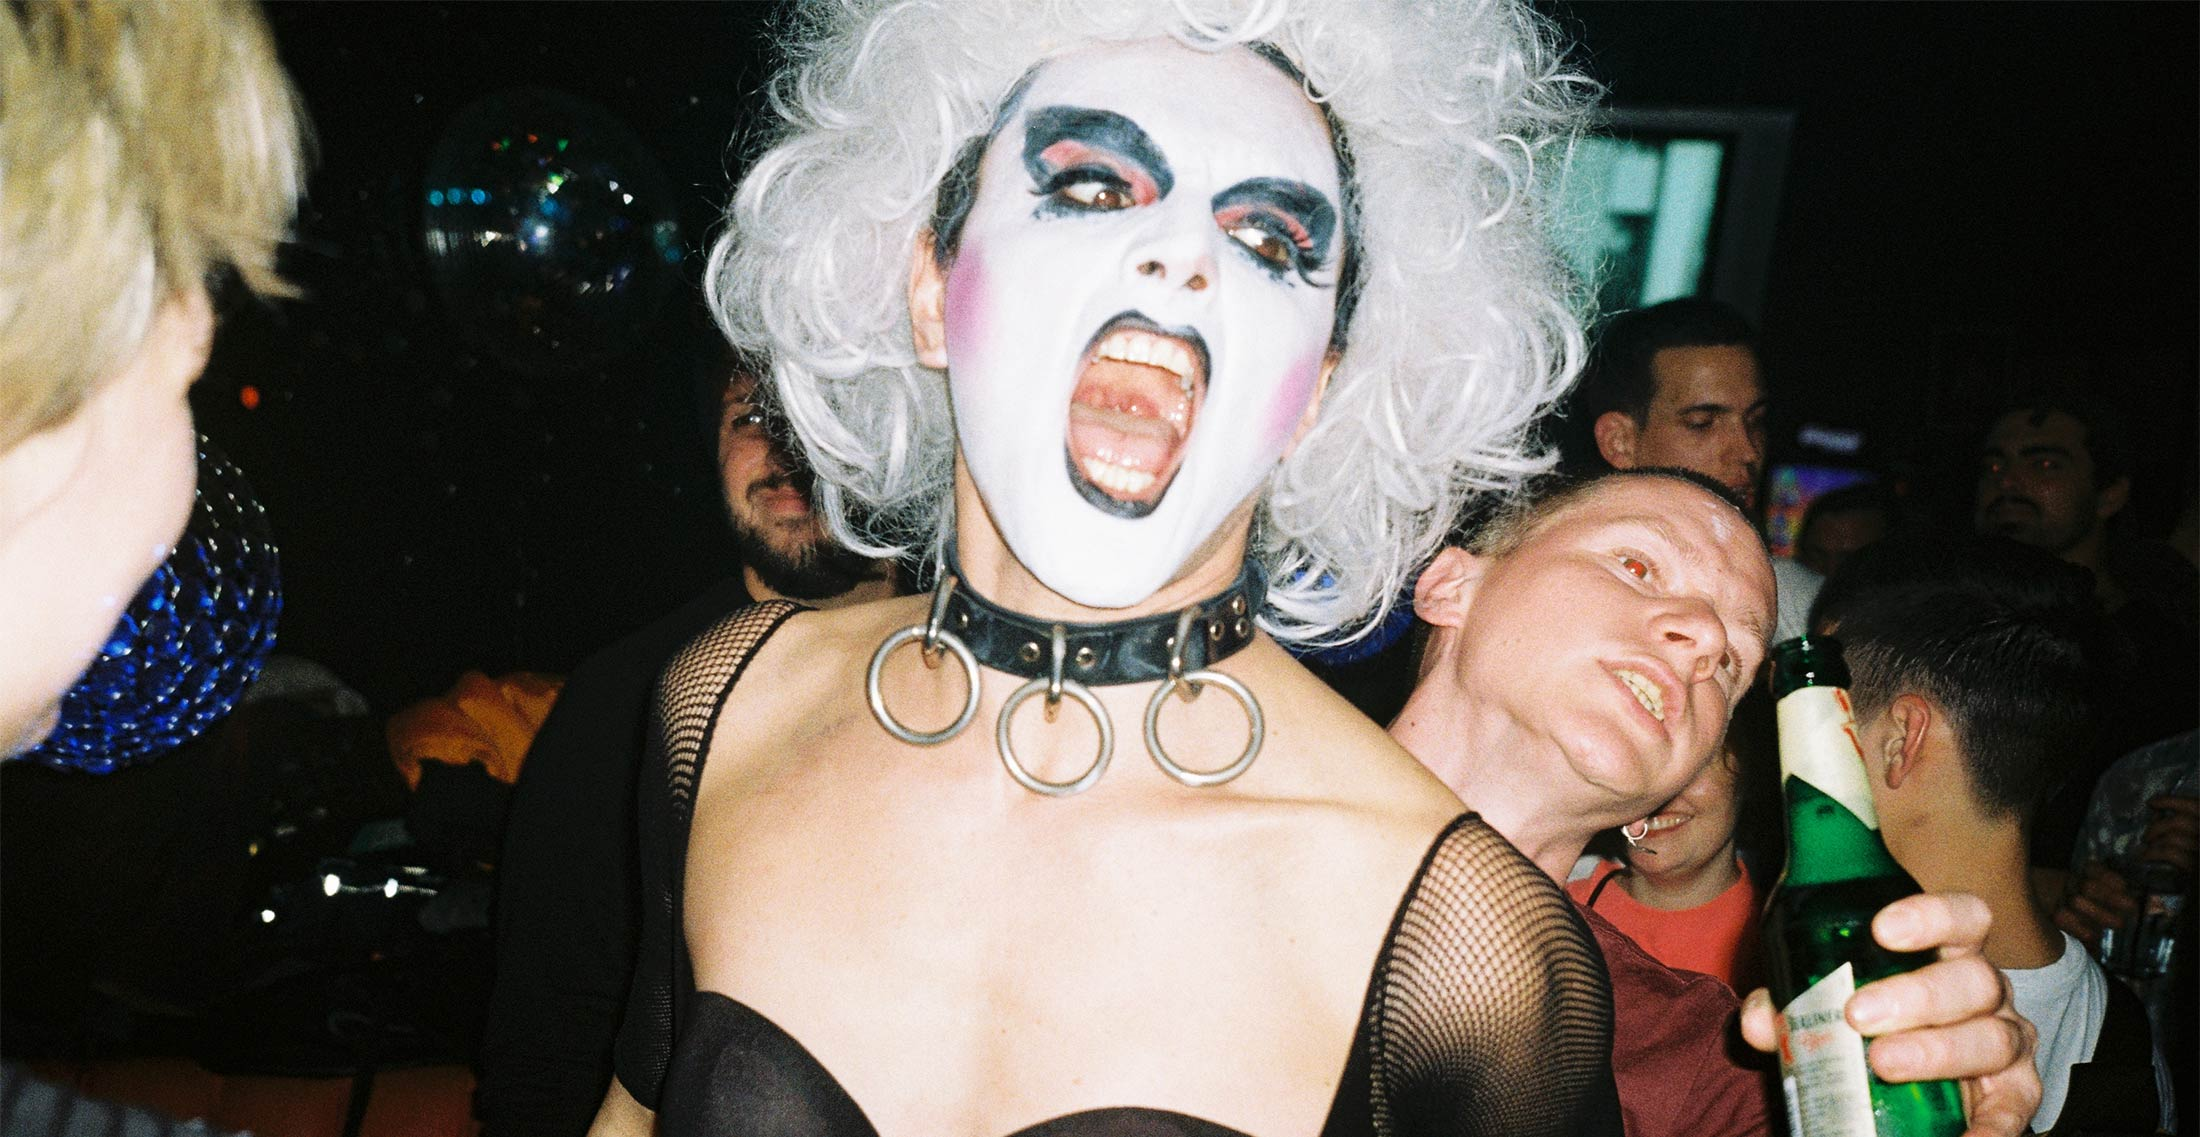 Check Out The Wild Side Of Berlin's Queer Club Scene With These Photos By Spyros Rennt